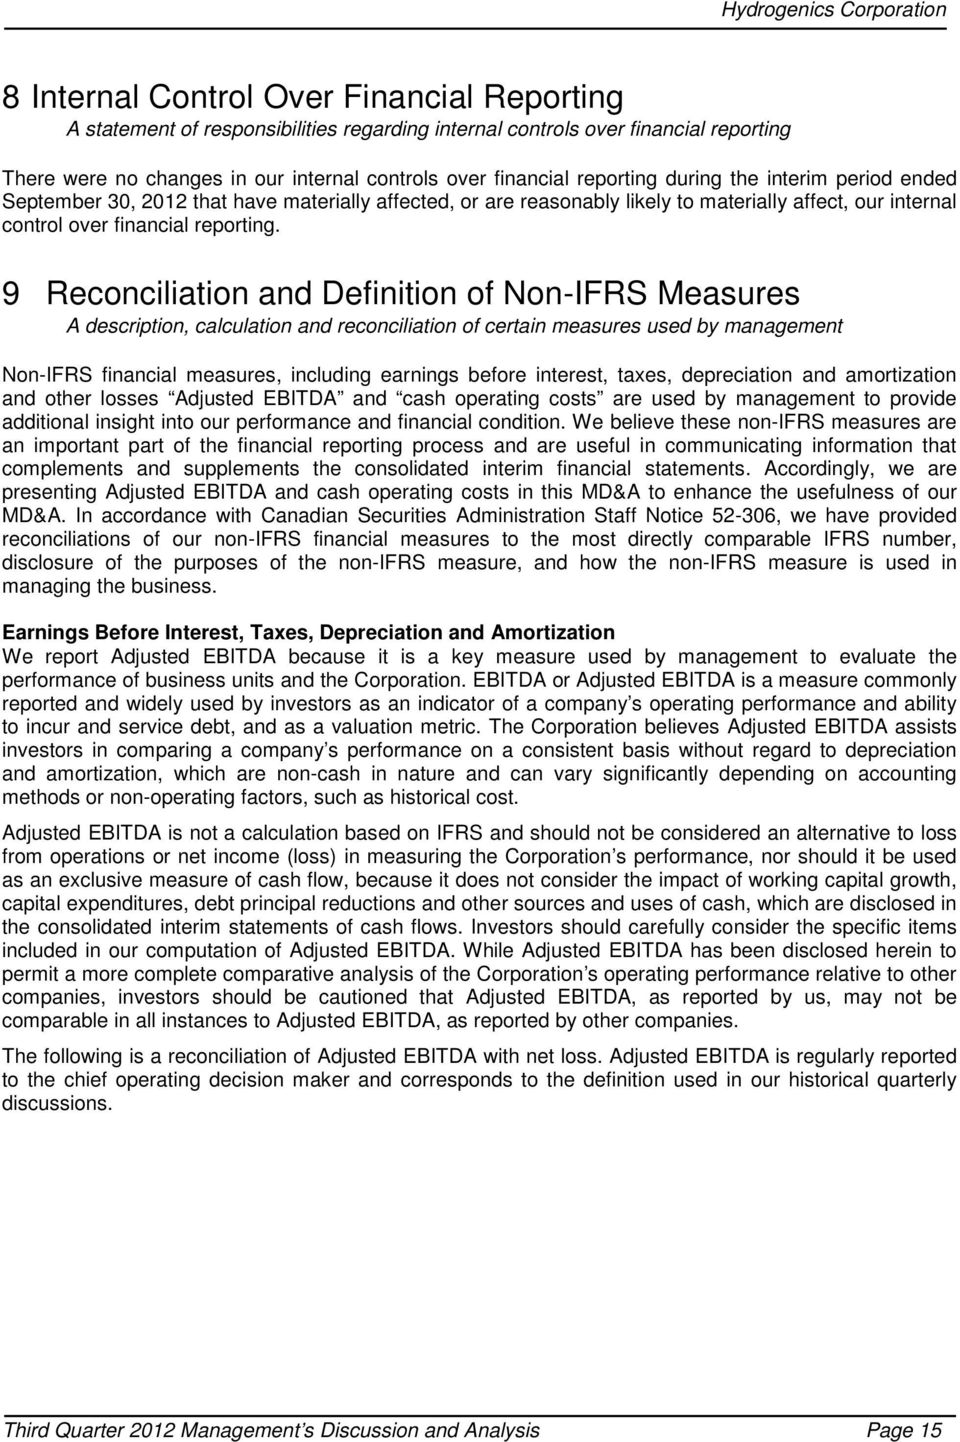 9 Reconciliation and Definition of Non-IFRS Measures A description, calculation and reconciliation of certain measures used by management Non-IFRS financial measures, including earnings before